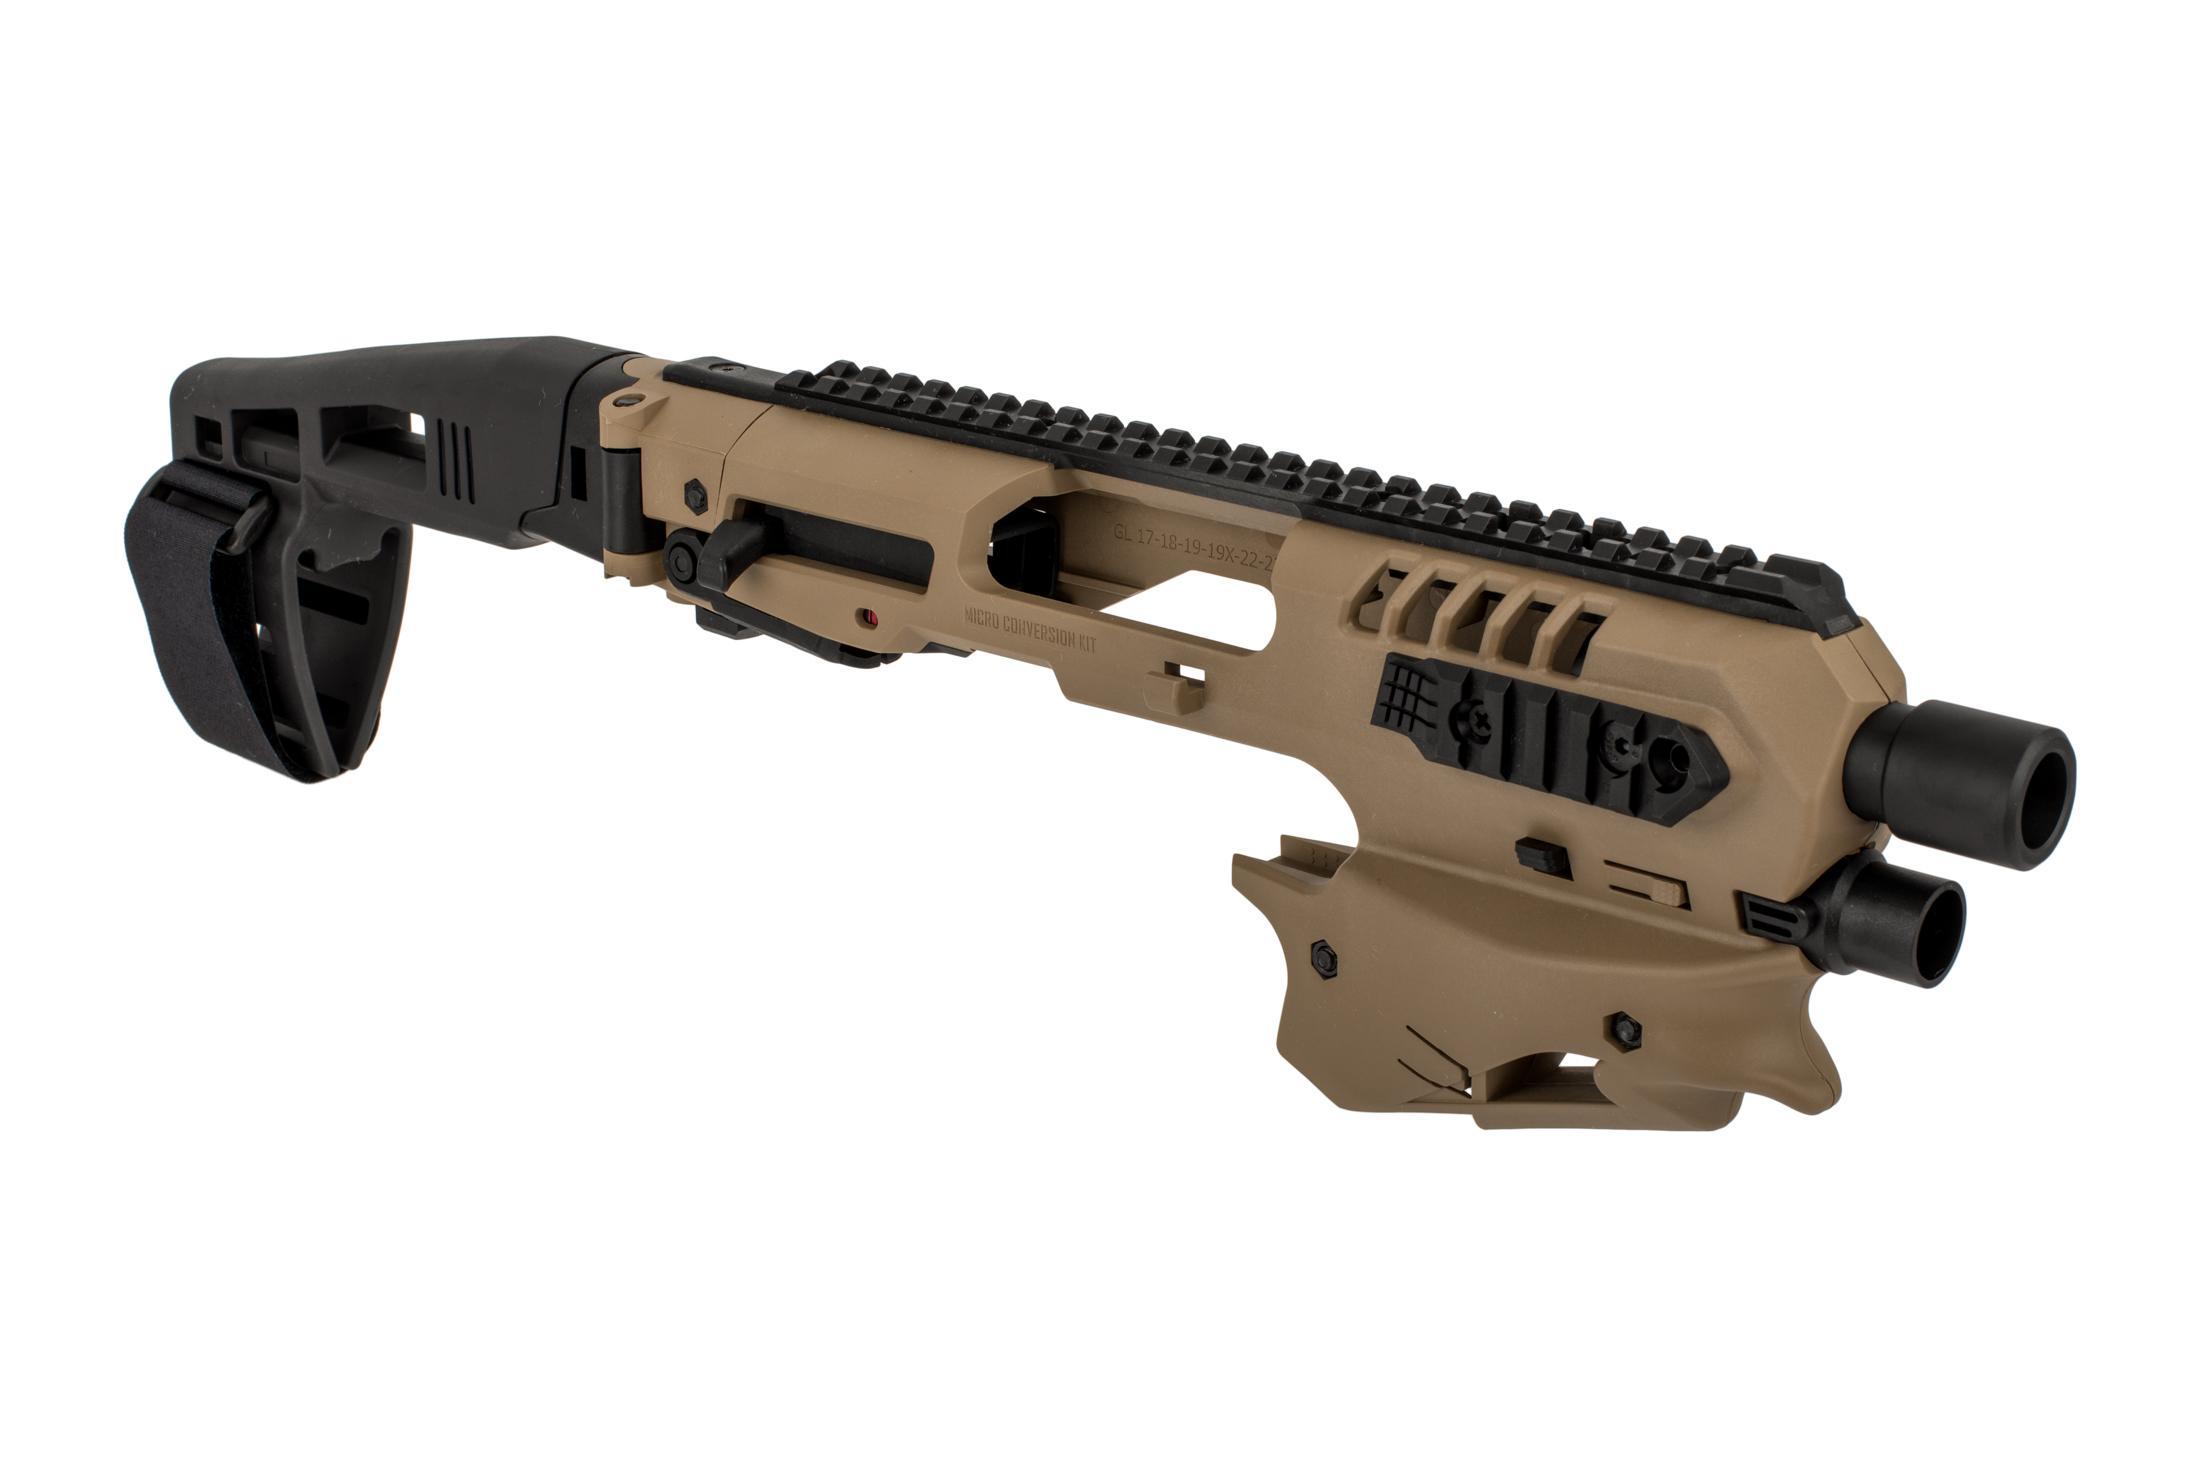 Command Arms Micro Conversion Kit for Glock handguns includes a long stabilizer for enhanced comfort and accuracy in flat dark earth